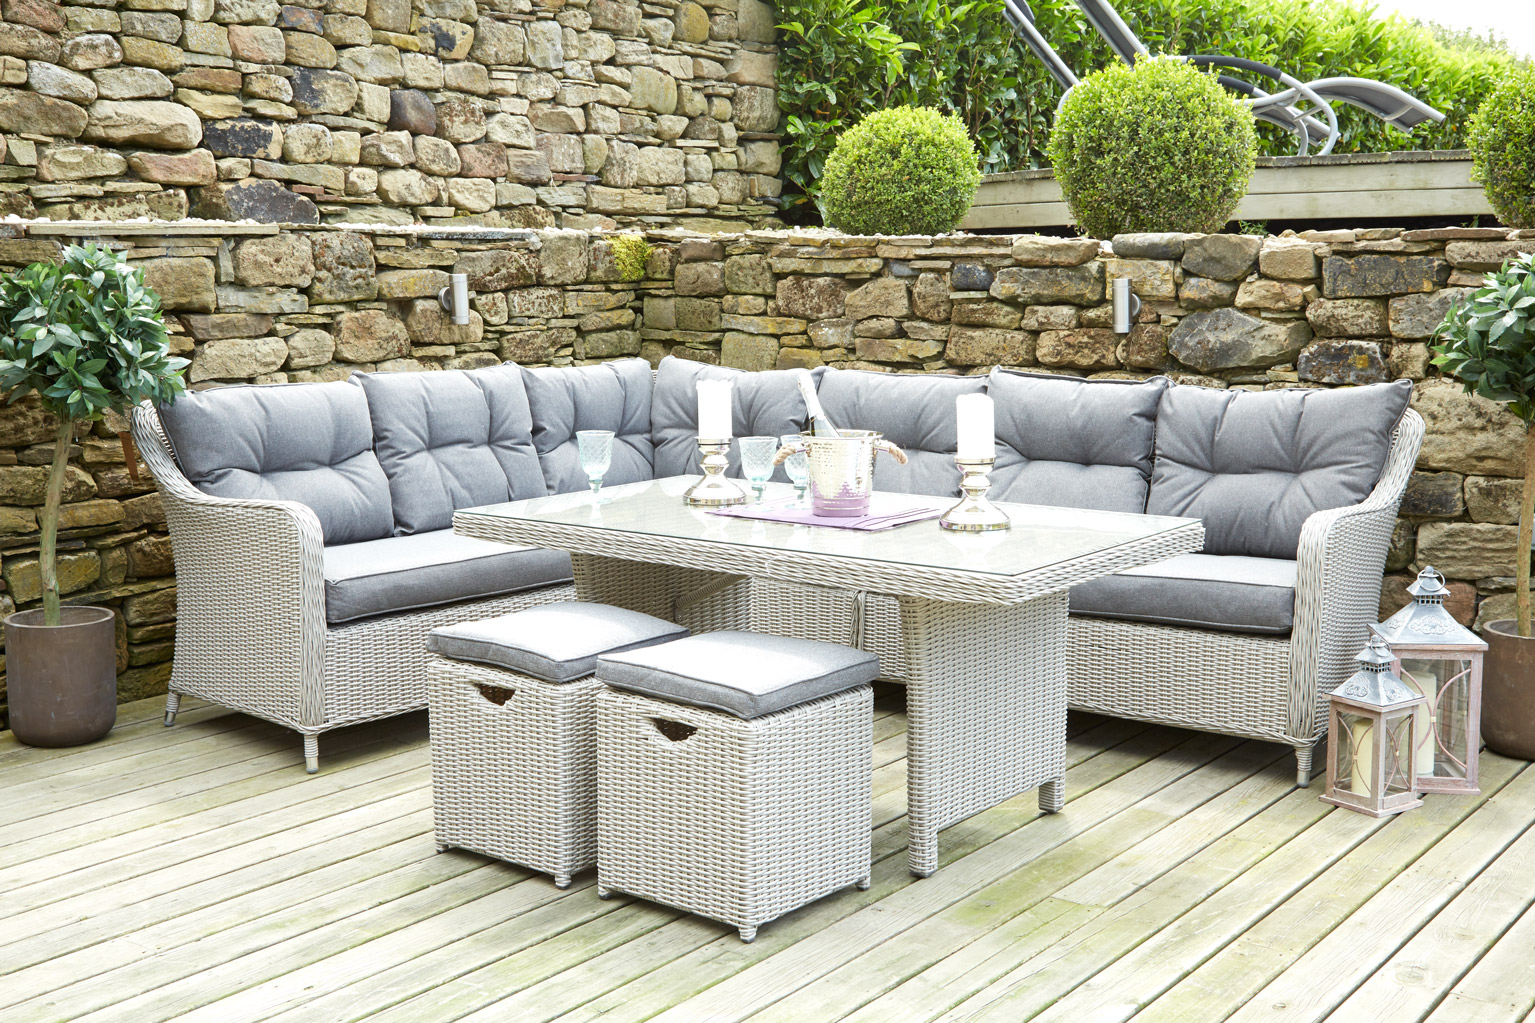 https://www.firstfurniture.co.uk/pub/media/catalog/product/1/8/18-132-sg.jpg